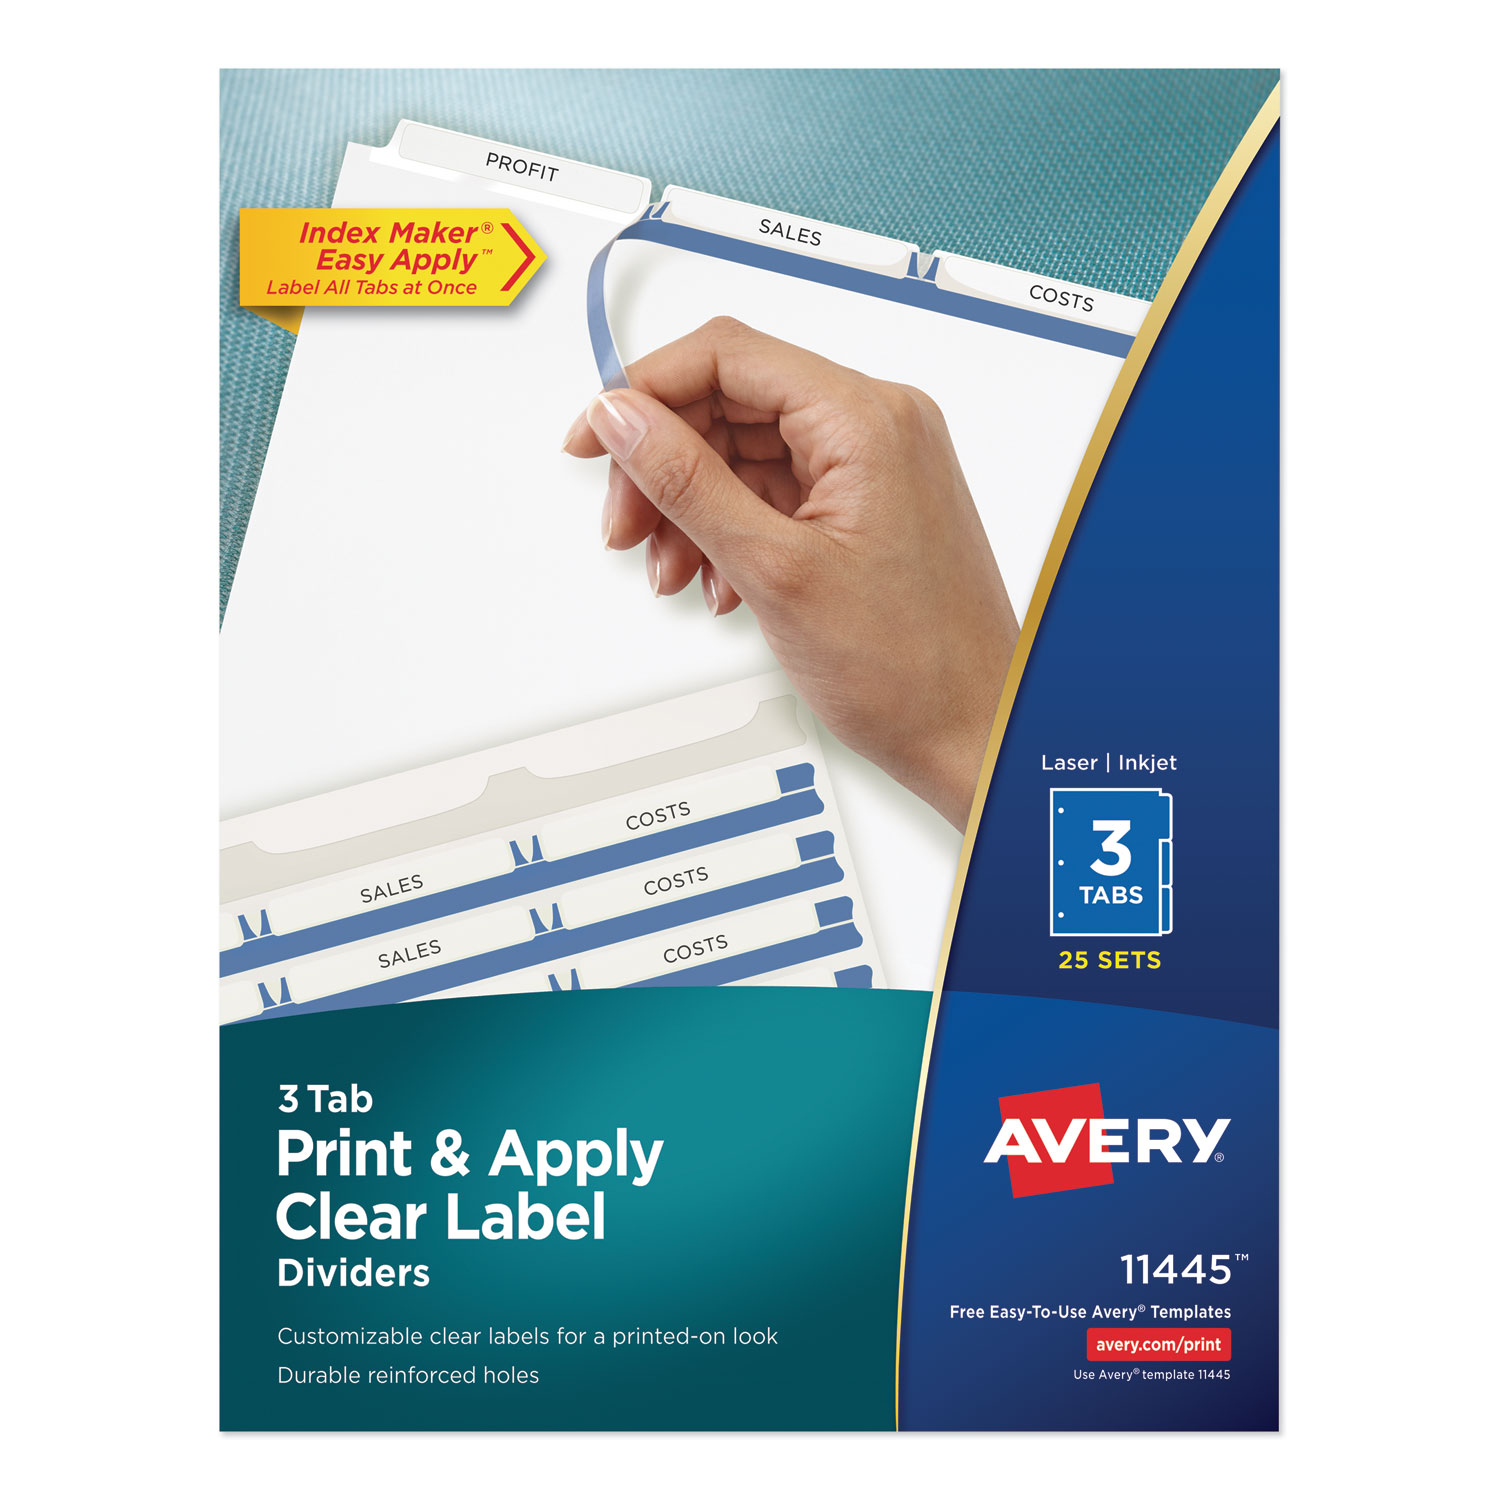 Print and Apply Index Maker Clear Label Dividers, 3 White Tabs, Letter, 25 Sets